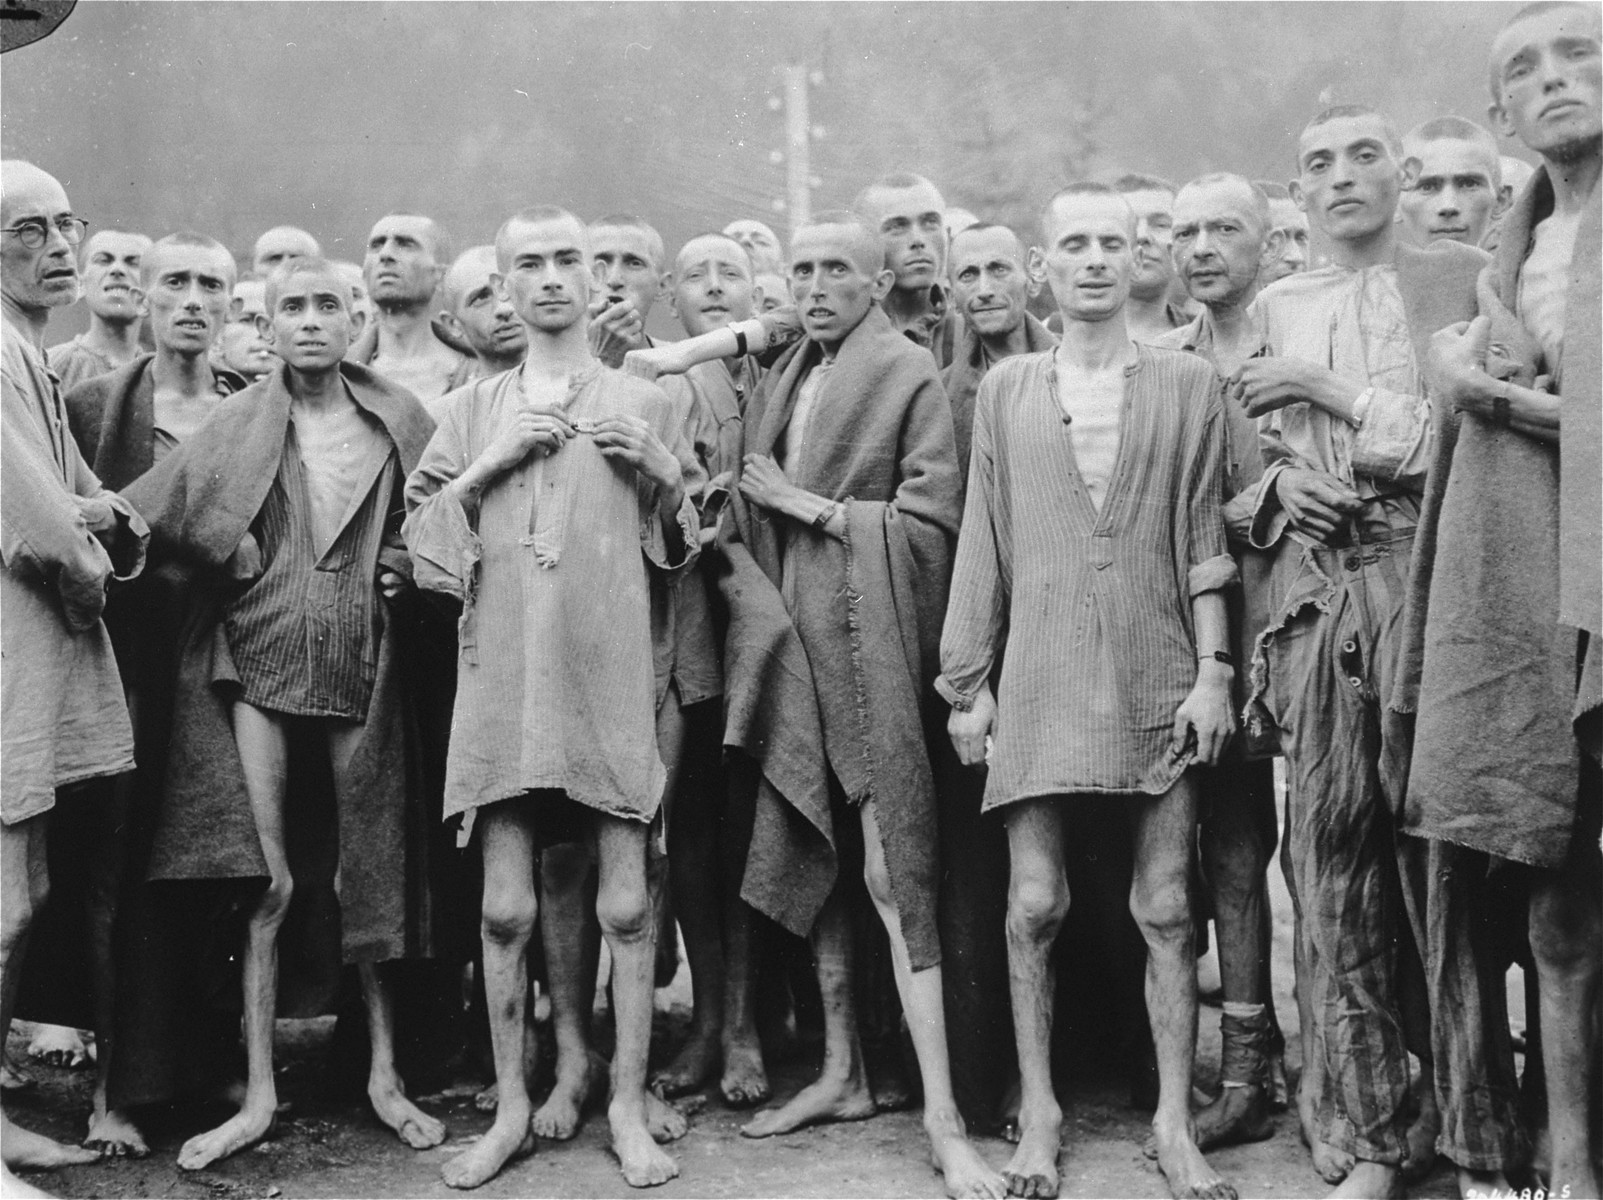 "One day after their liberation, a group of former prisoners at the Ebensee concentration camp pose outside for US Army Signal Corps photographer Arnold Samuelson.  The former prisoners came out of the infirmary barracks in order to be photographed.  Among those pictured is a 21-year old Jewish survivor by the name of Joachim Friedner from Krakow, Poland (center-left holding his metal name tag), and William Hauben (second row from the front between the survivor holding his name tag and the one wearing a blanket).  Bernard Smilovic is located second from the left, first row wearing a blanket.  Original caption reads: "" Starved prisoners, nearly dead from hunger, pose in the Nazi concentration camp in Ebensee, Austria.   In the Austrian Alps the Nazis had one of their largest camps.  Large numbers of inmates were starving to death and dying at the rate of 2000 per week.  The camp was reputedly used for ""Scientific"" experiments.  It was liberated by the 80th Division, 3rd U.S. Army.""   Original caption from donated photograph reads:  ""Starved prisoners, nearly dead from hunger, pose for the photographer in their rags."""